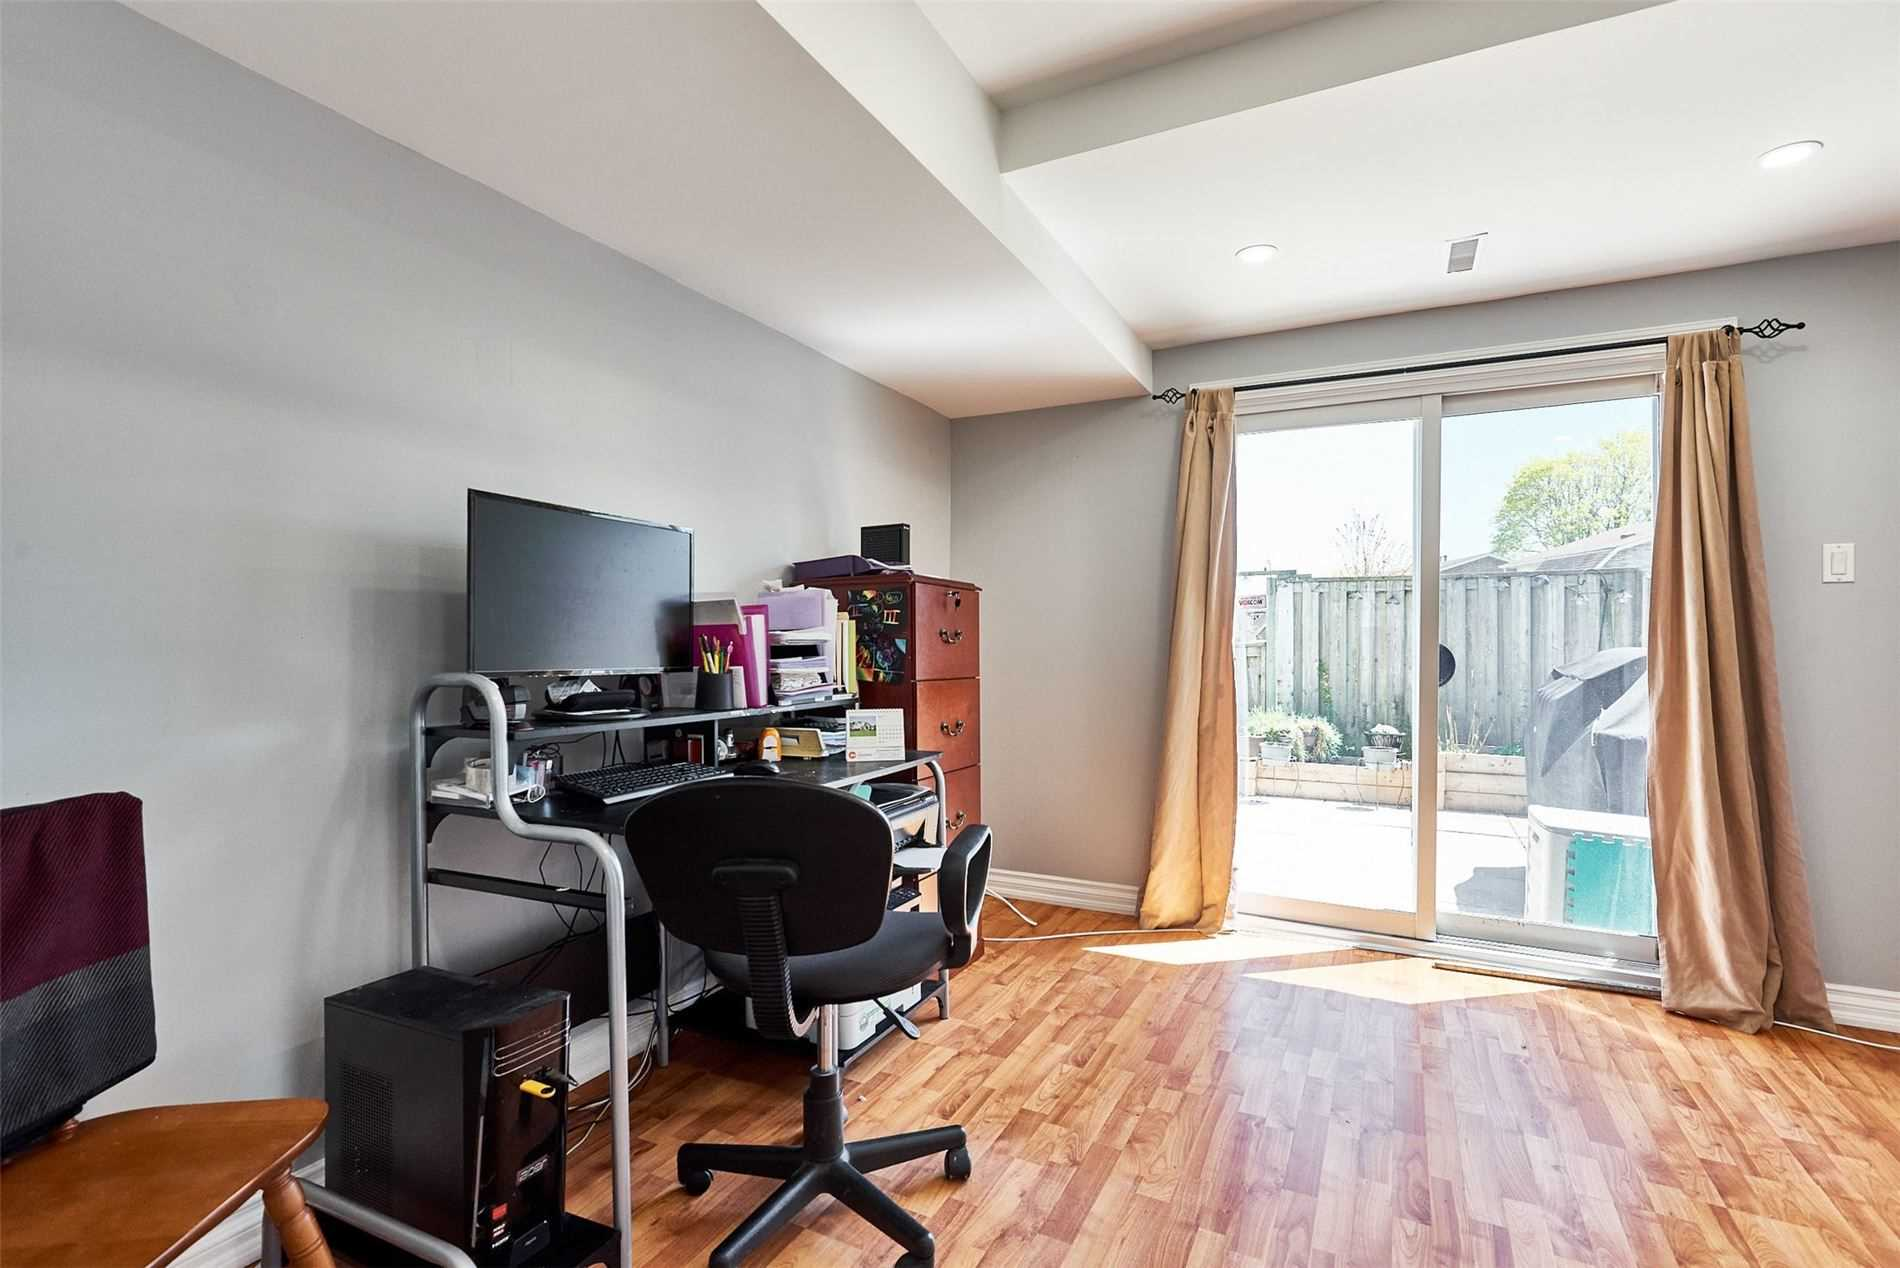 Image 20 of 33 showing inside of 3 Bedroom Condo Townhouse 2-Storey for Sale at 33 Clover Ridge Dr W Unit# 9, Ajax L1S3M5